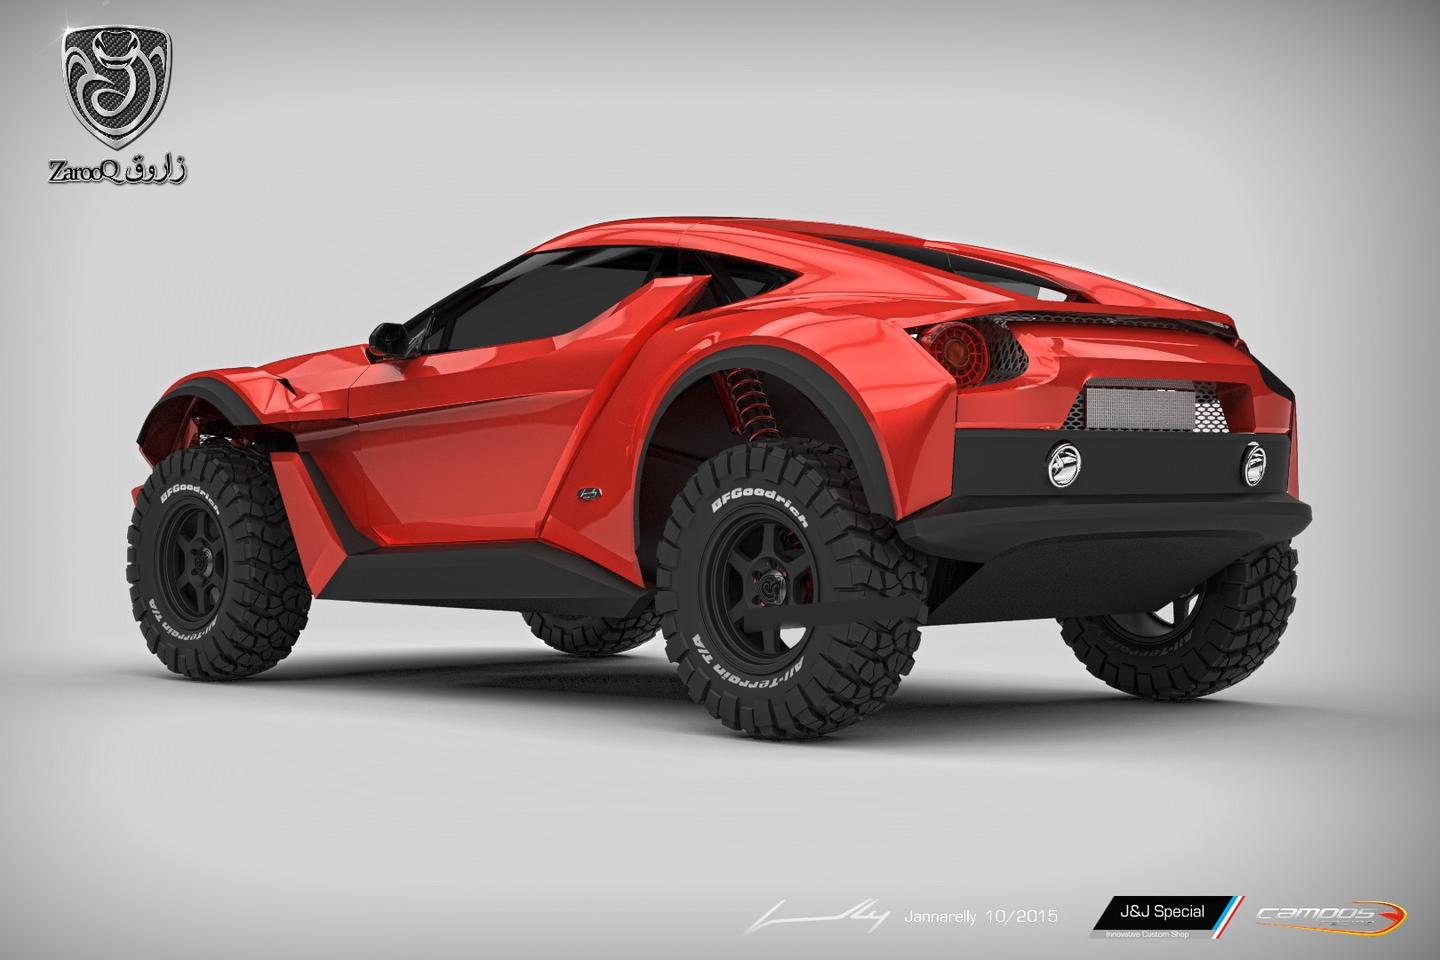 The Sand Racer rendering shows a high ride and rugged body